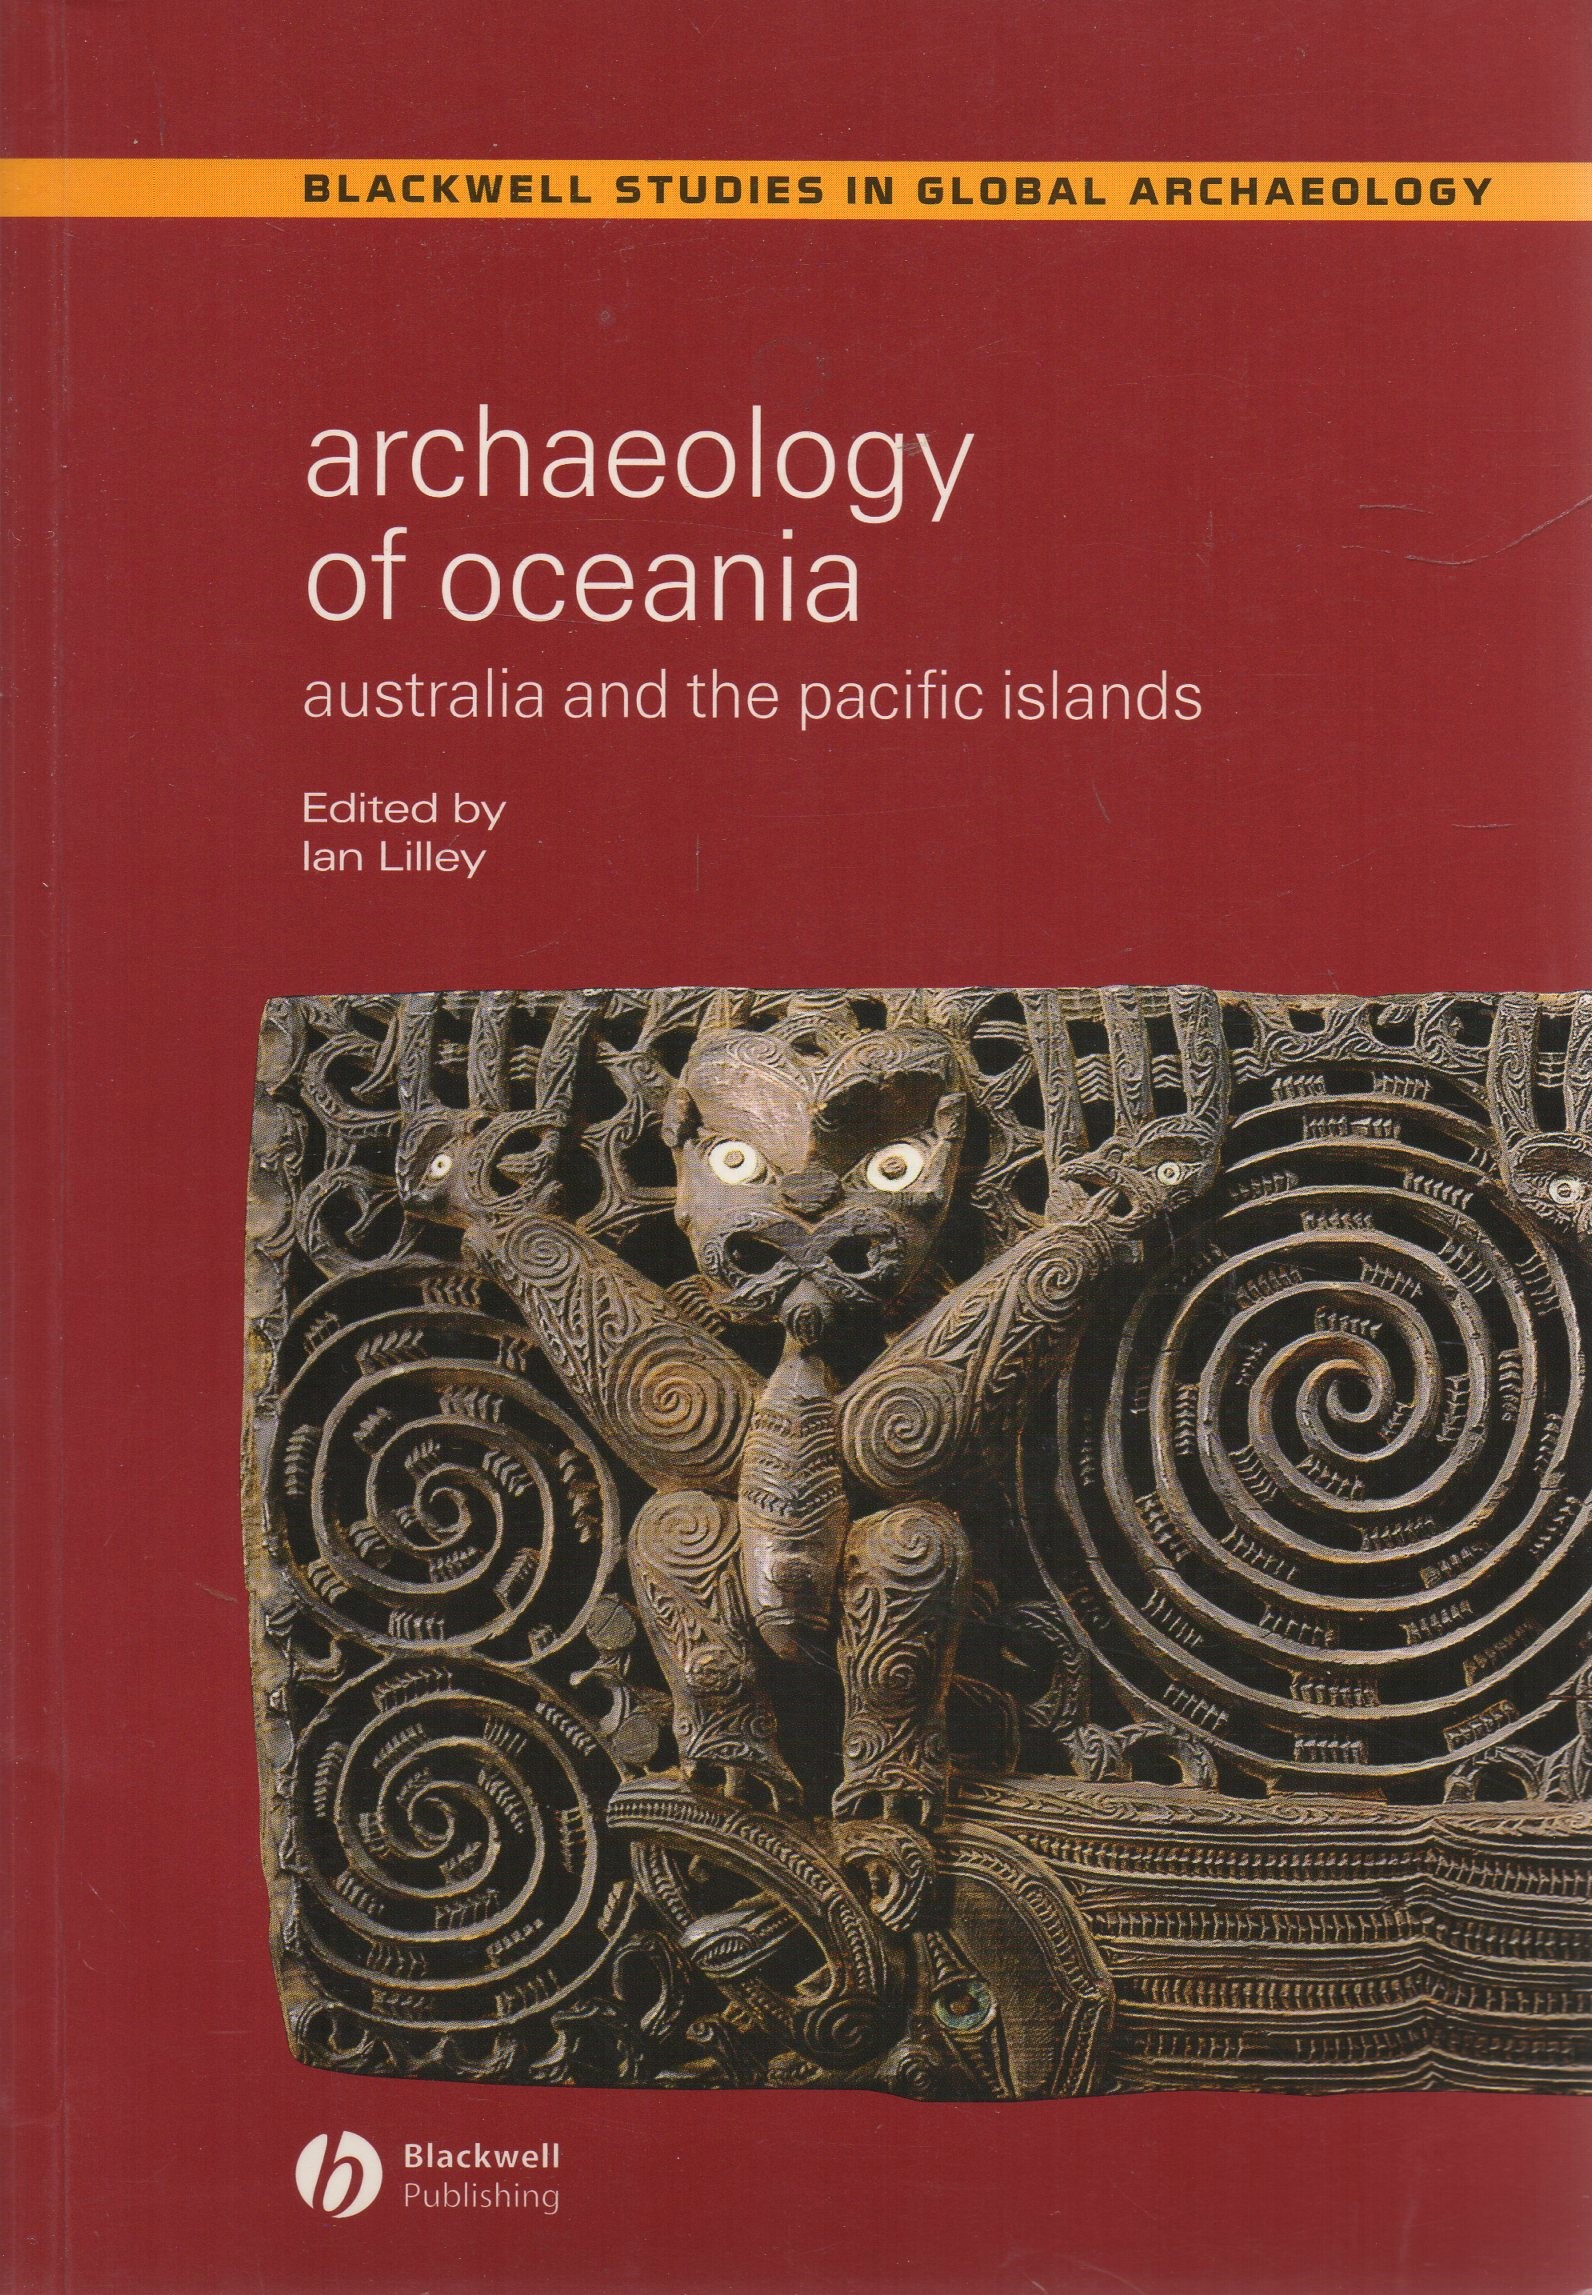 LILLEY, IAN (ED.) - Archaeology of Oceania: Australia and the Pacific Islands